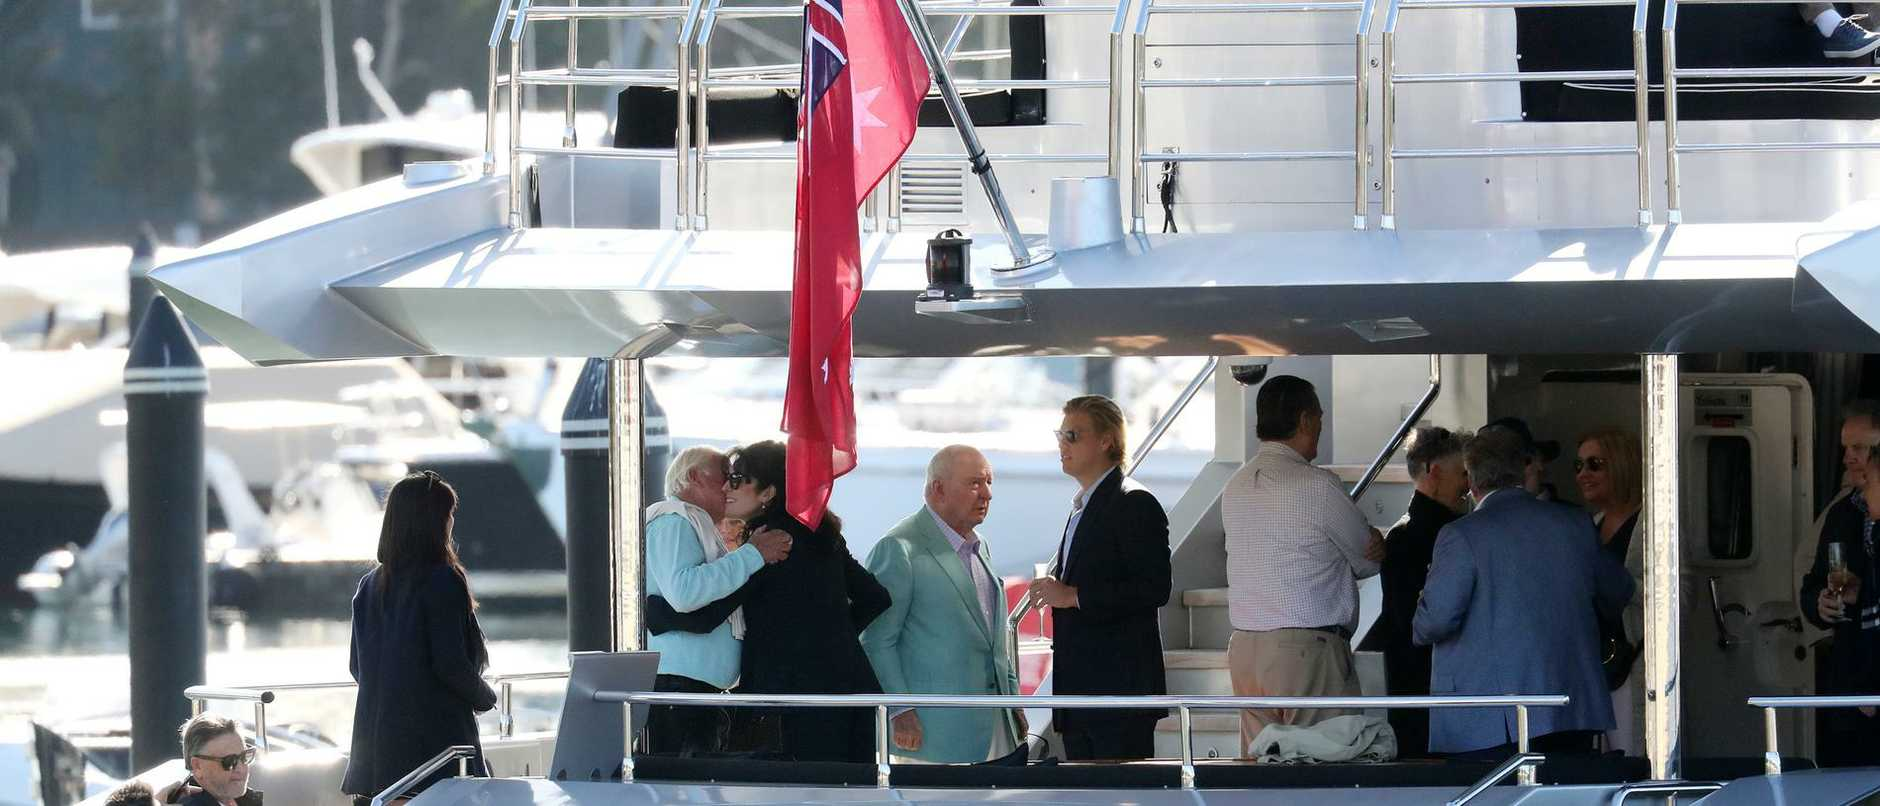 Broadcaster Alan Jones shows no sign of putting a stop to the celebrations, spotted in high spirits on board a private yacht in Sydney Harbour.